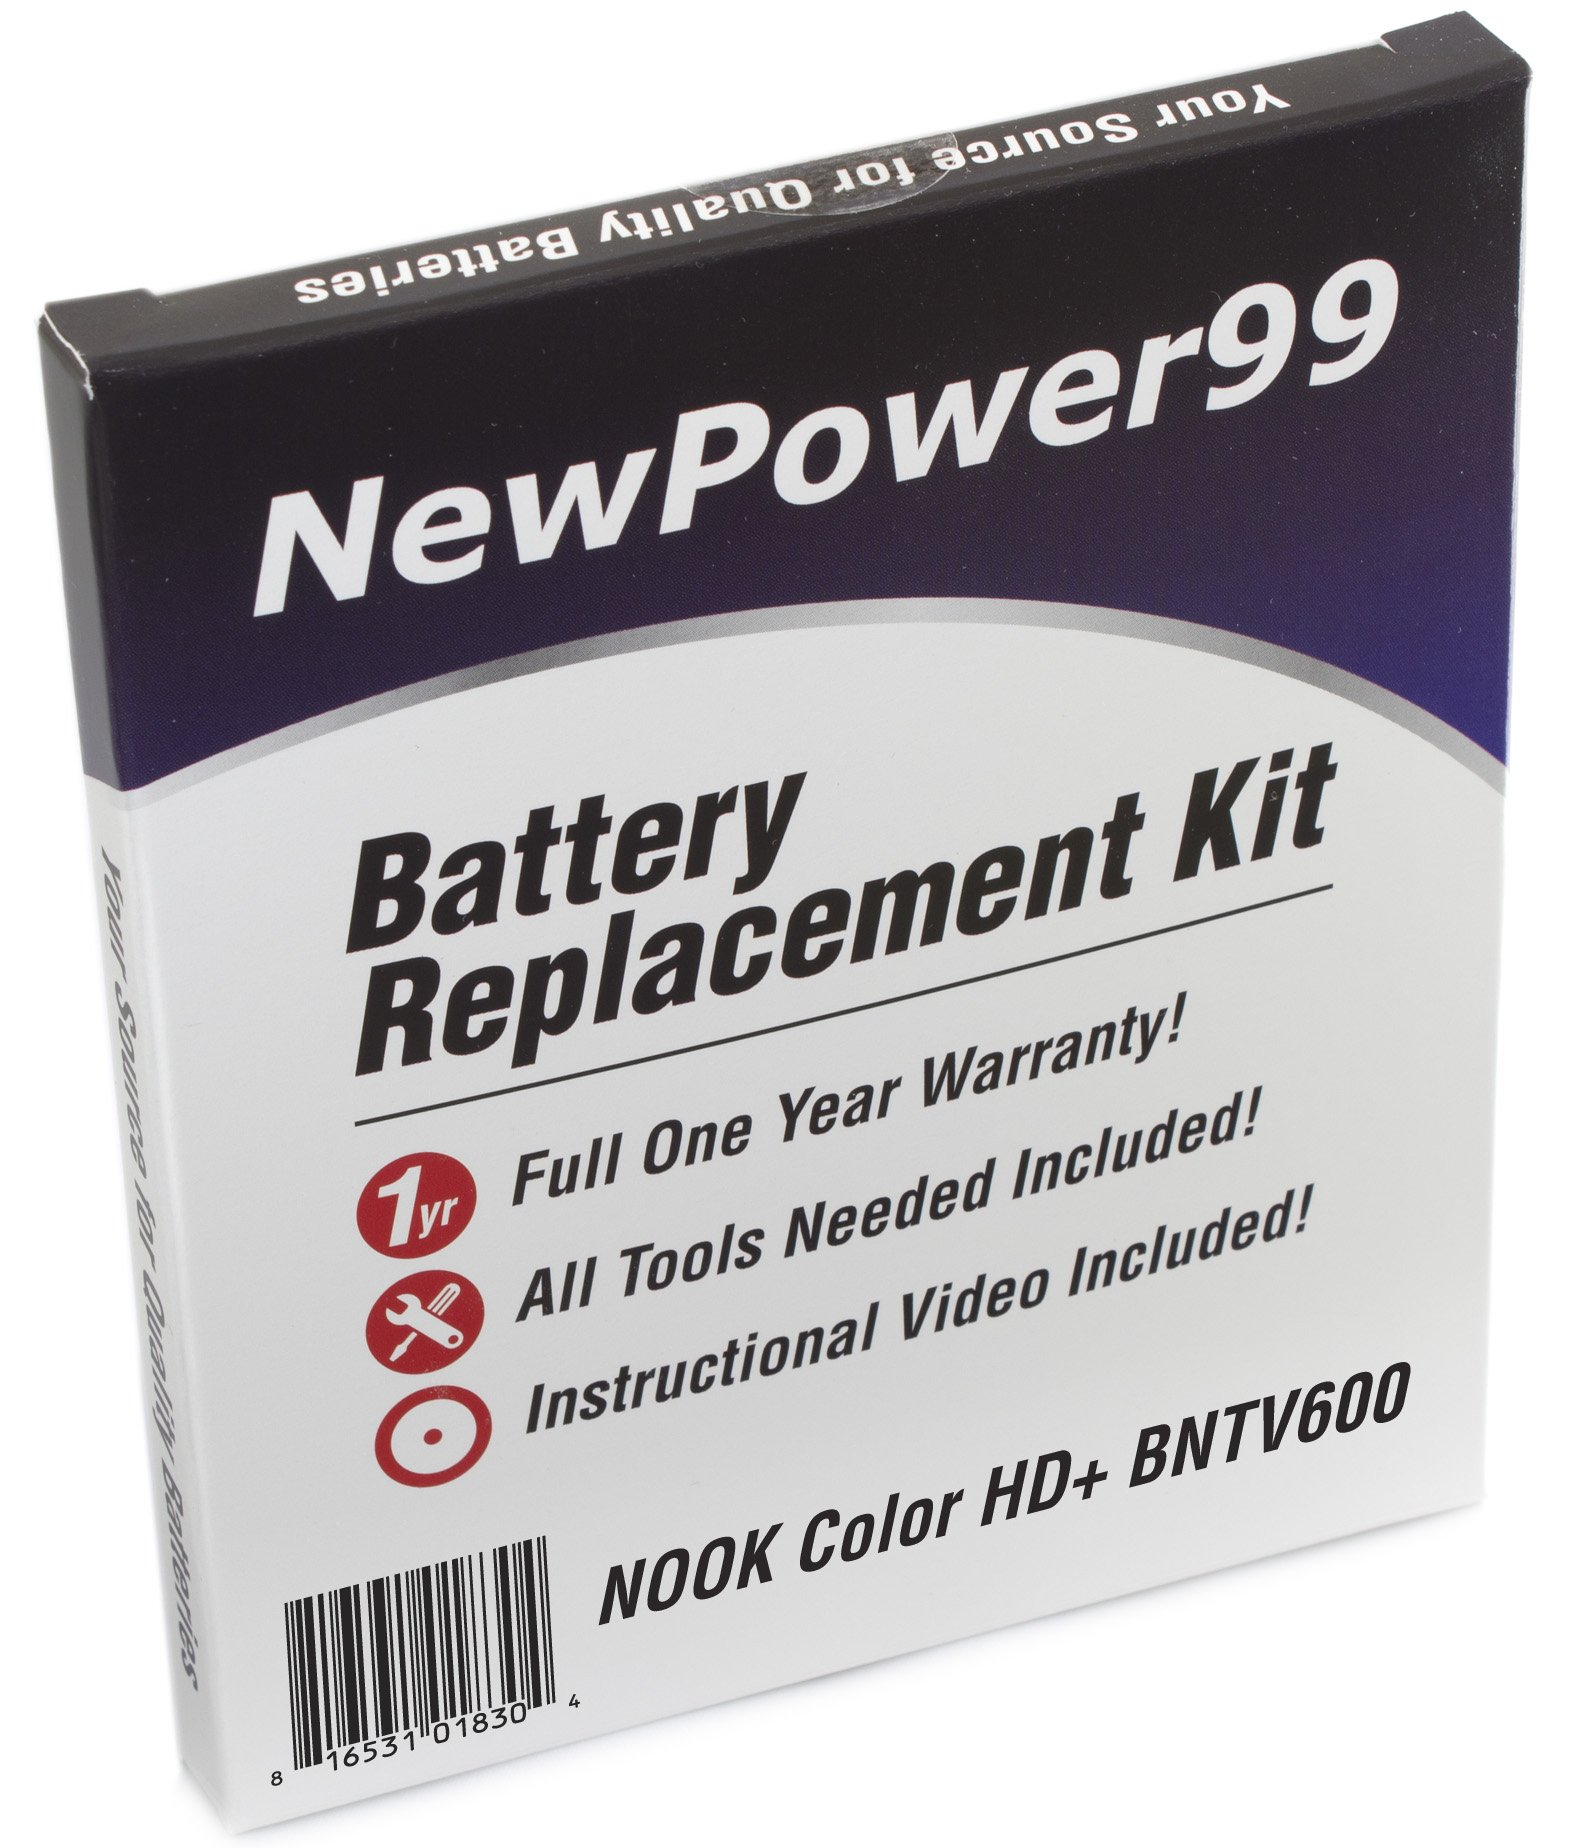 Battery Replacement Kit for the Barnes and Noble NOOK Color HD+ BNTV600 Tablet with Installation Video, Tools, and Extended Life Battery